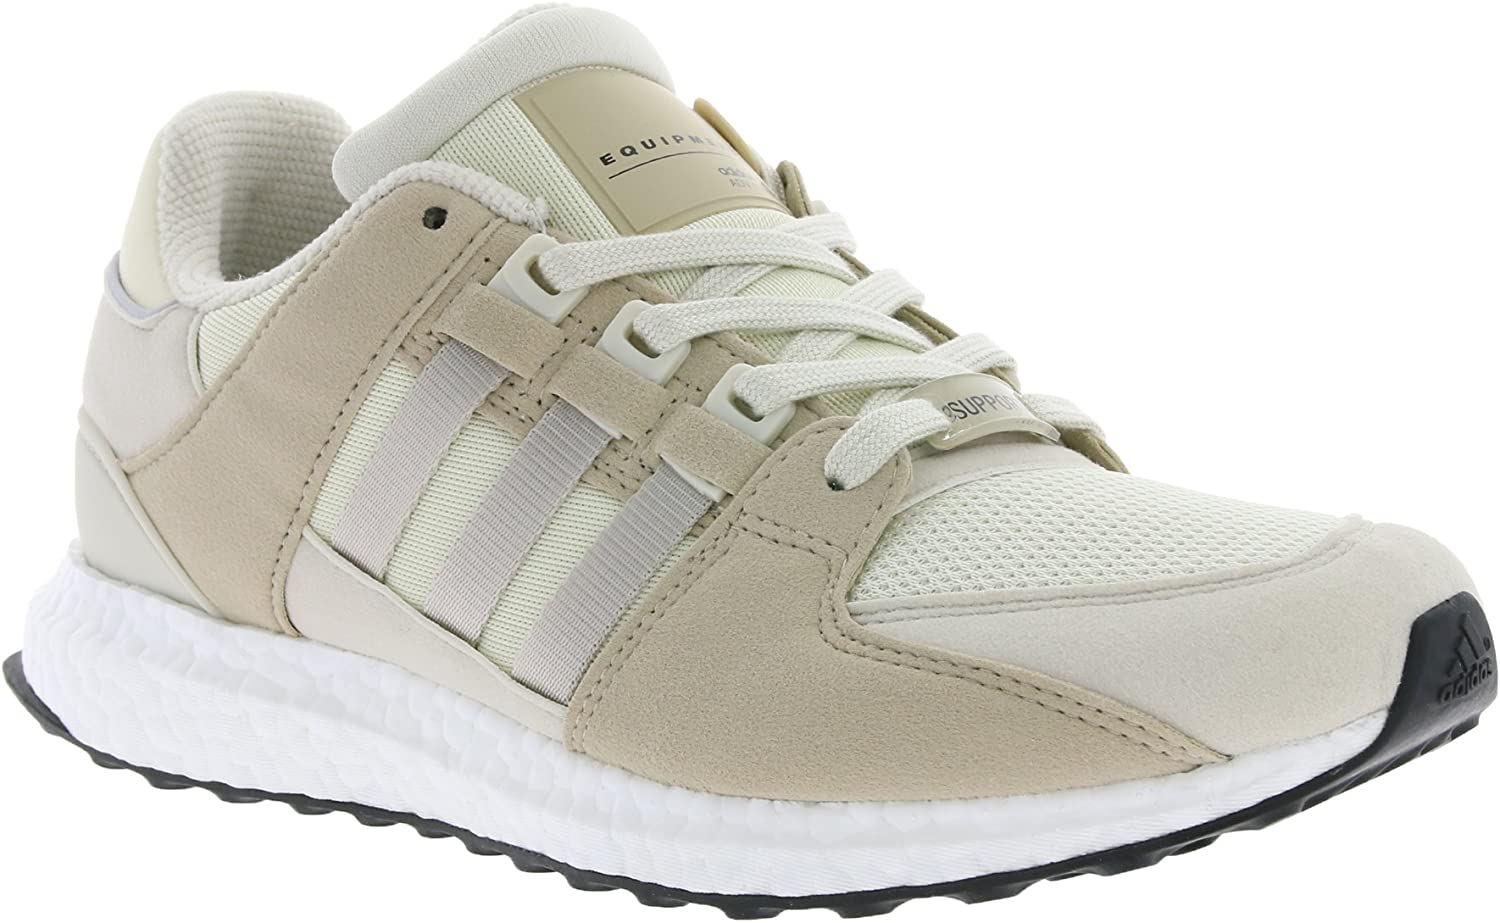 Adidas Originals EQT Equipment Support Ultra, Trace Grün-Utility Ivy-Utility grau